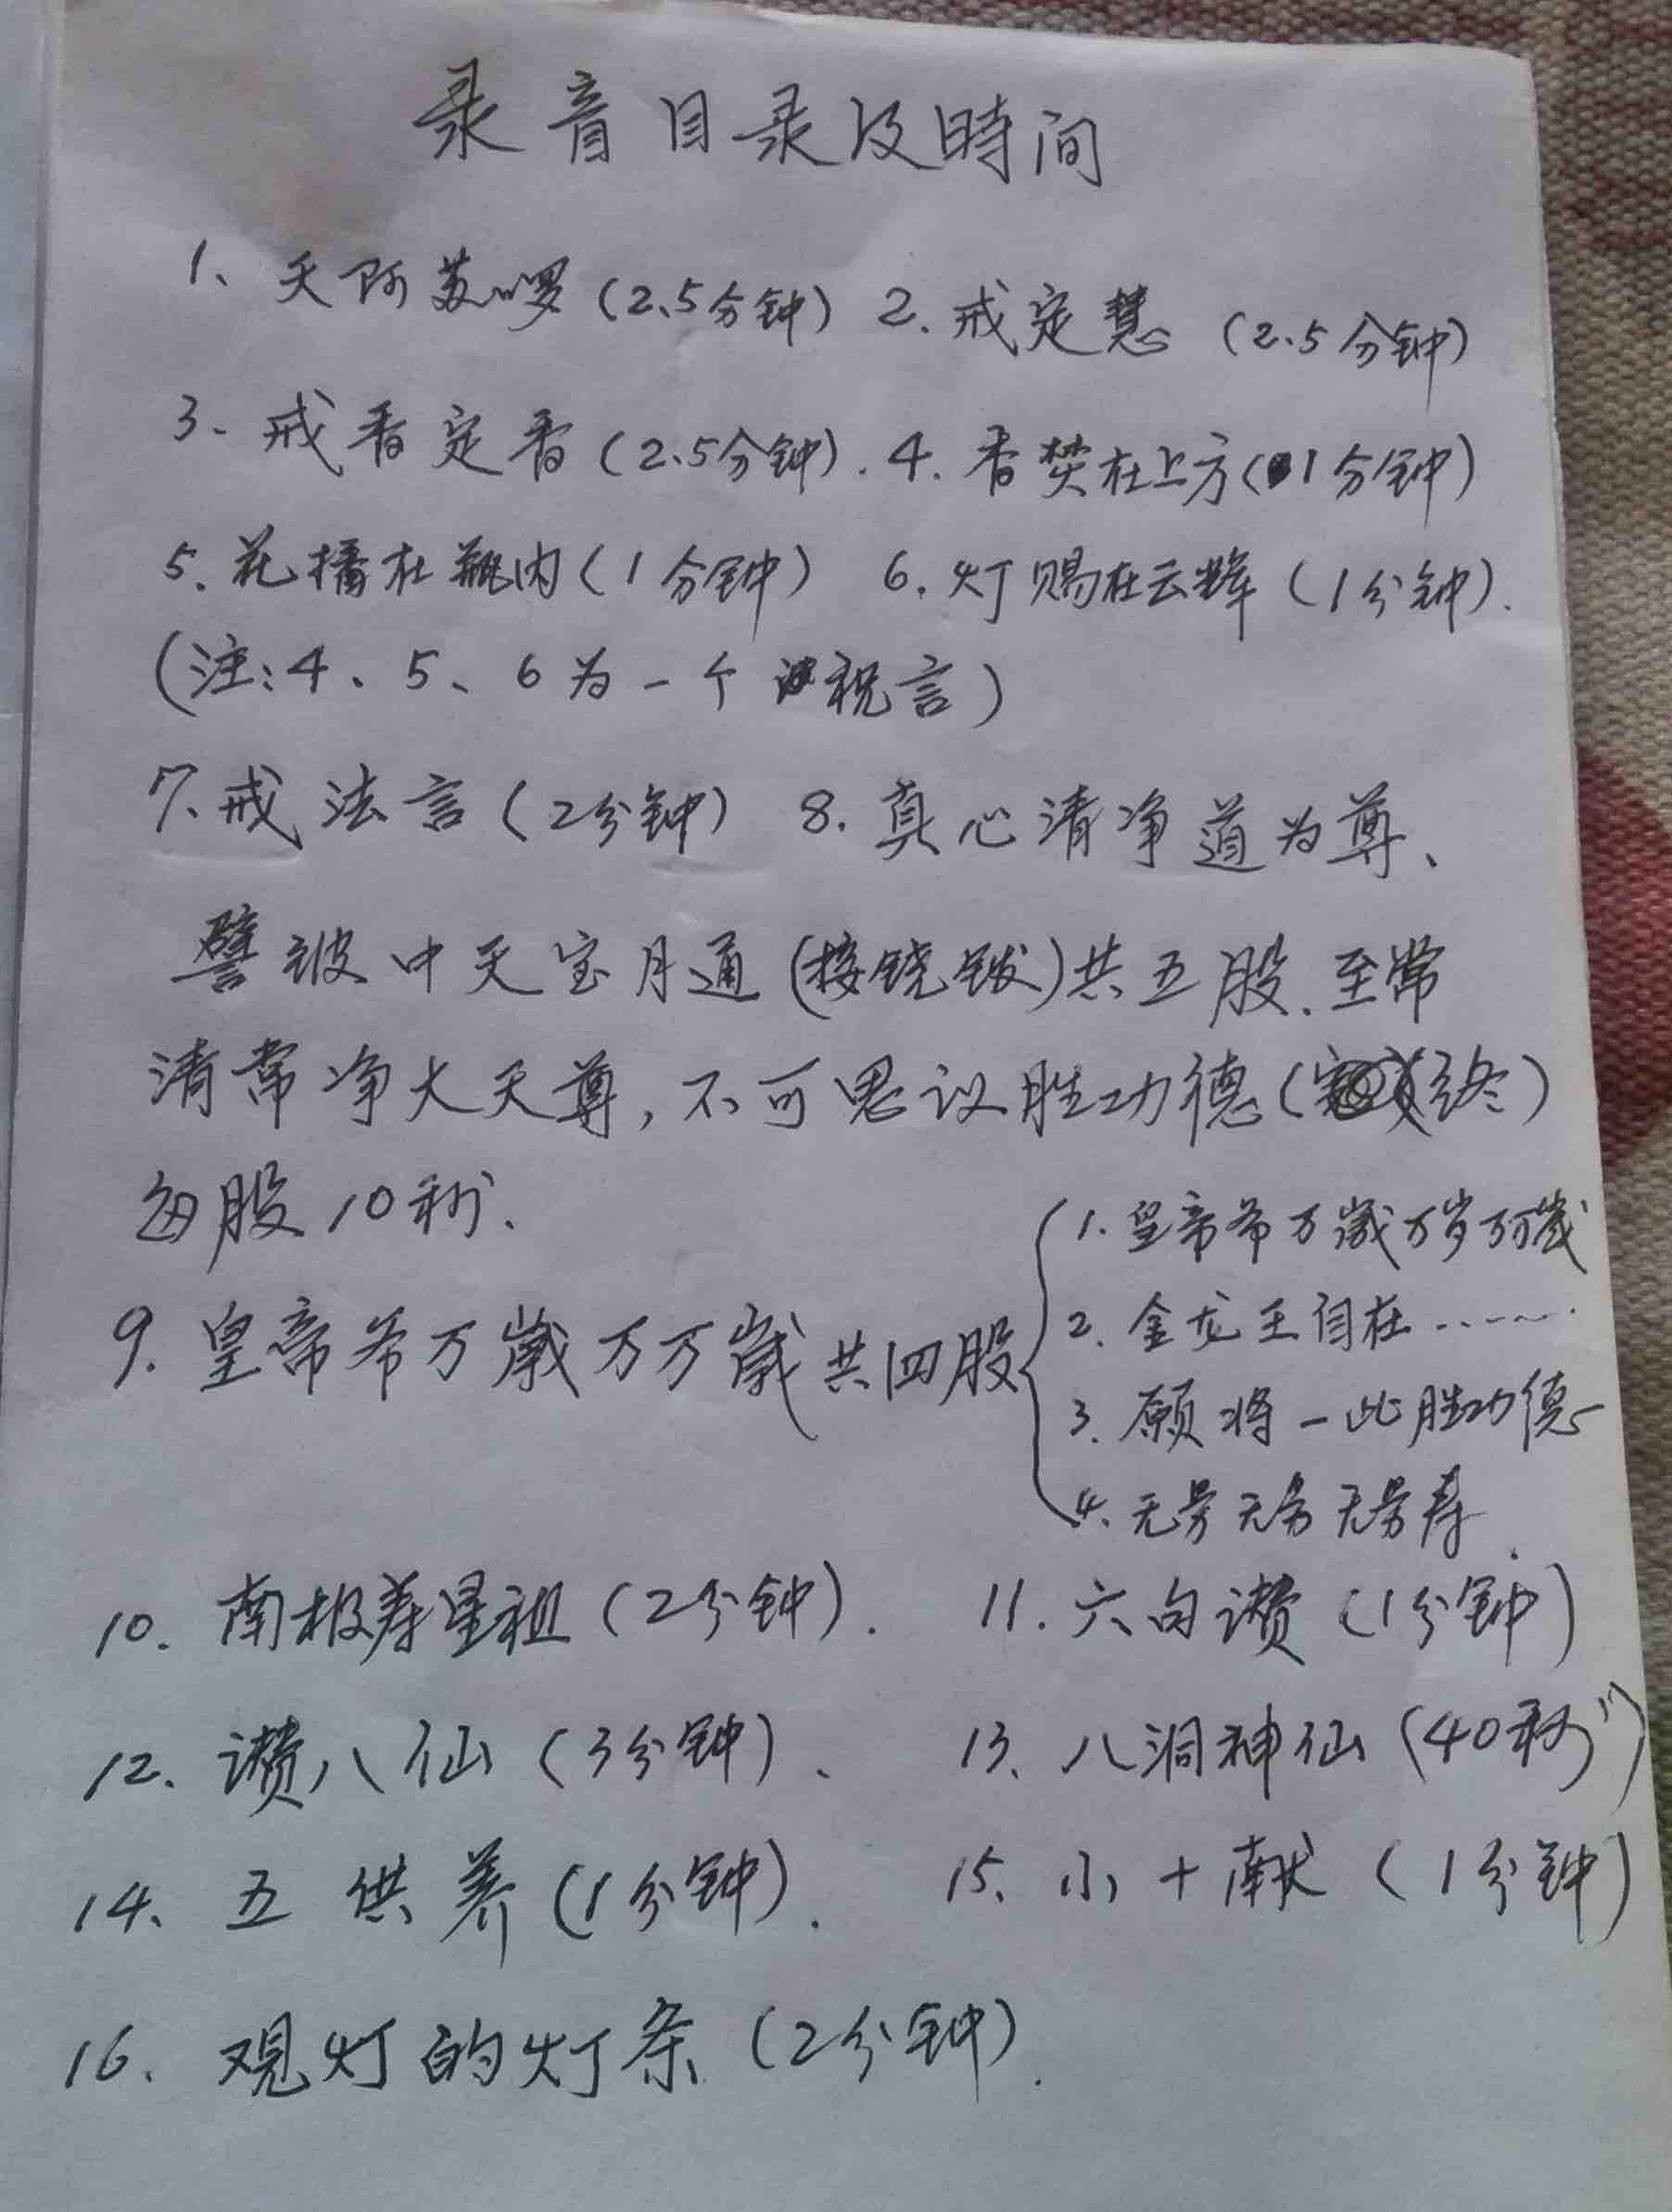 zhuyan tapes contents